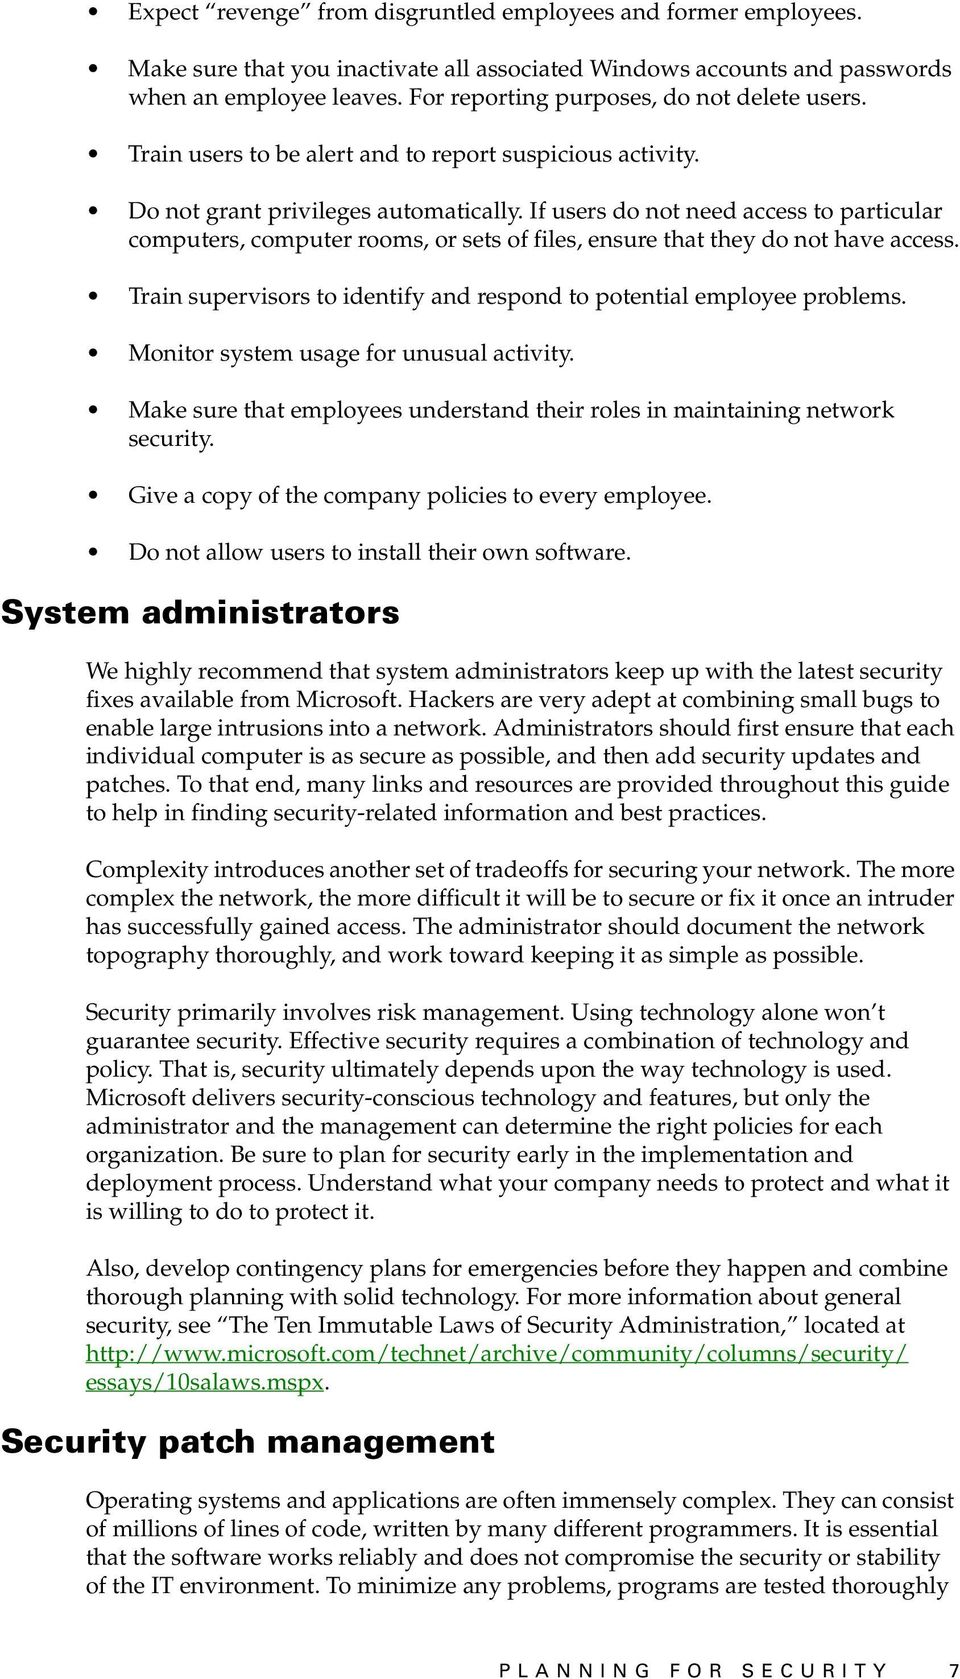 If users do not need access to particular computers, computer rooms, or sets of files, ensure that they do not have access. Train supervisors to identify and respond to potential employee problems.